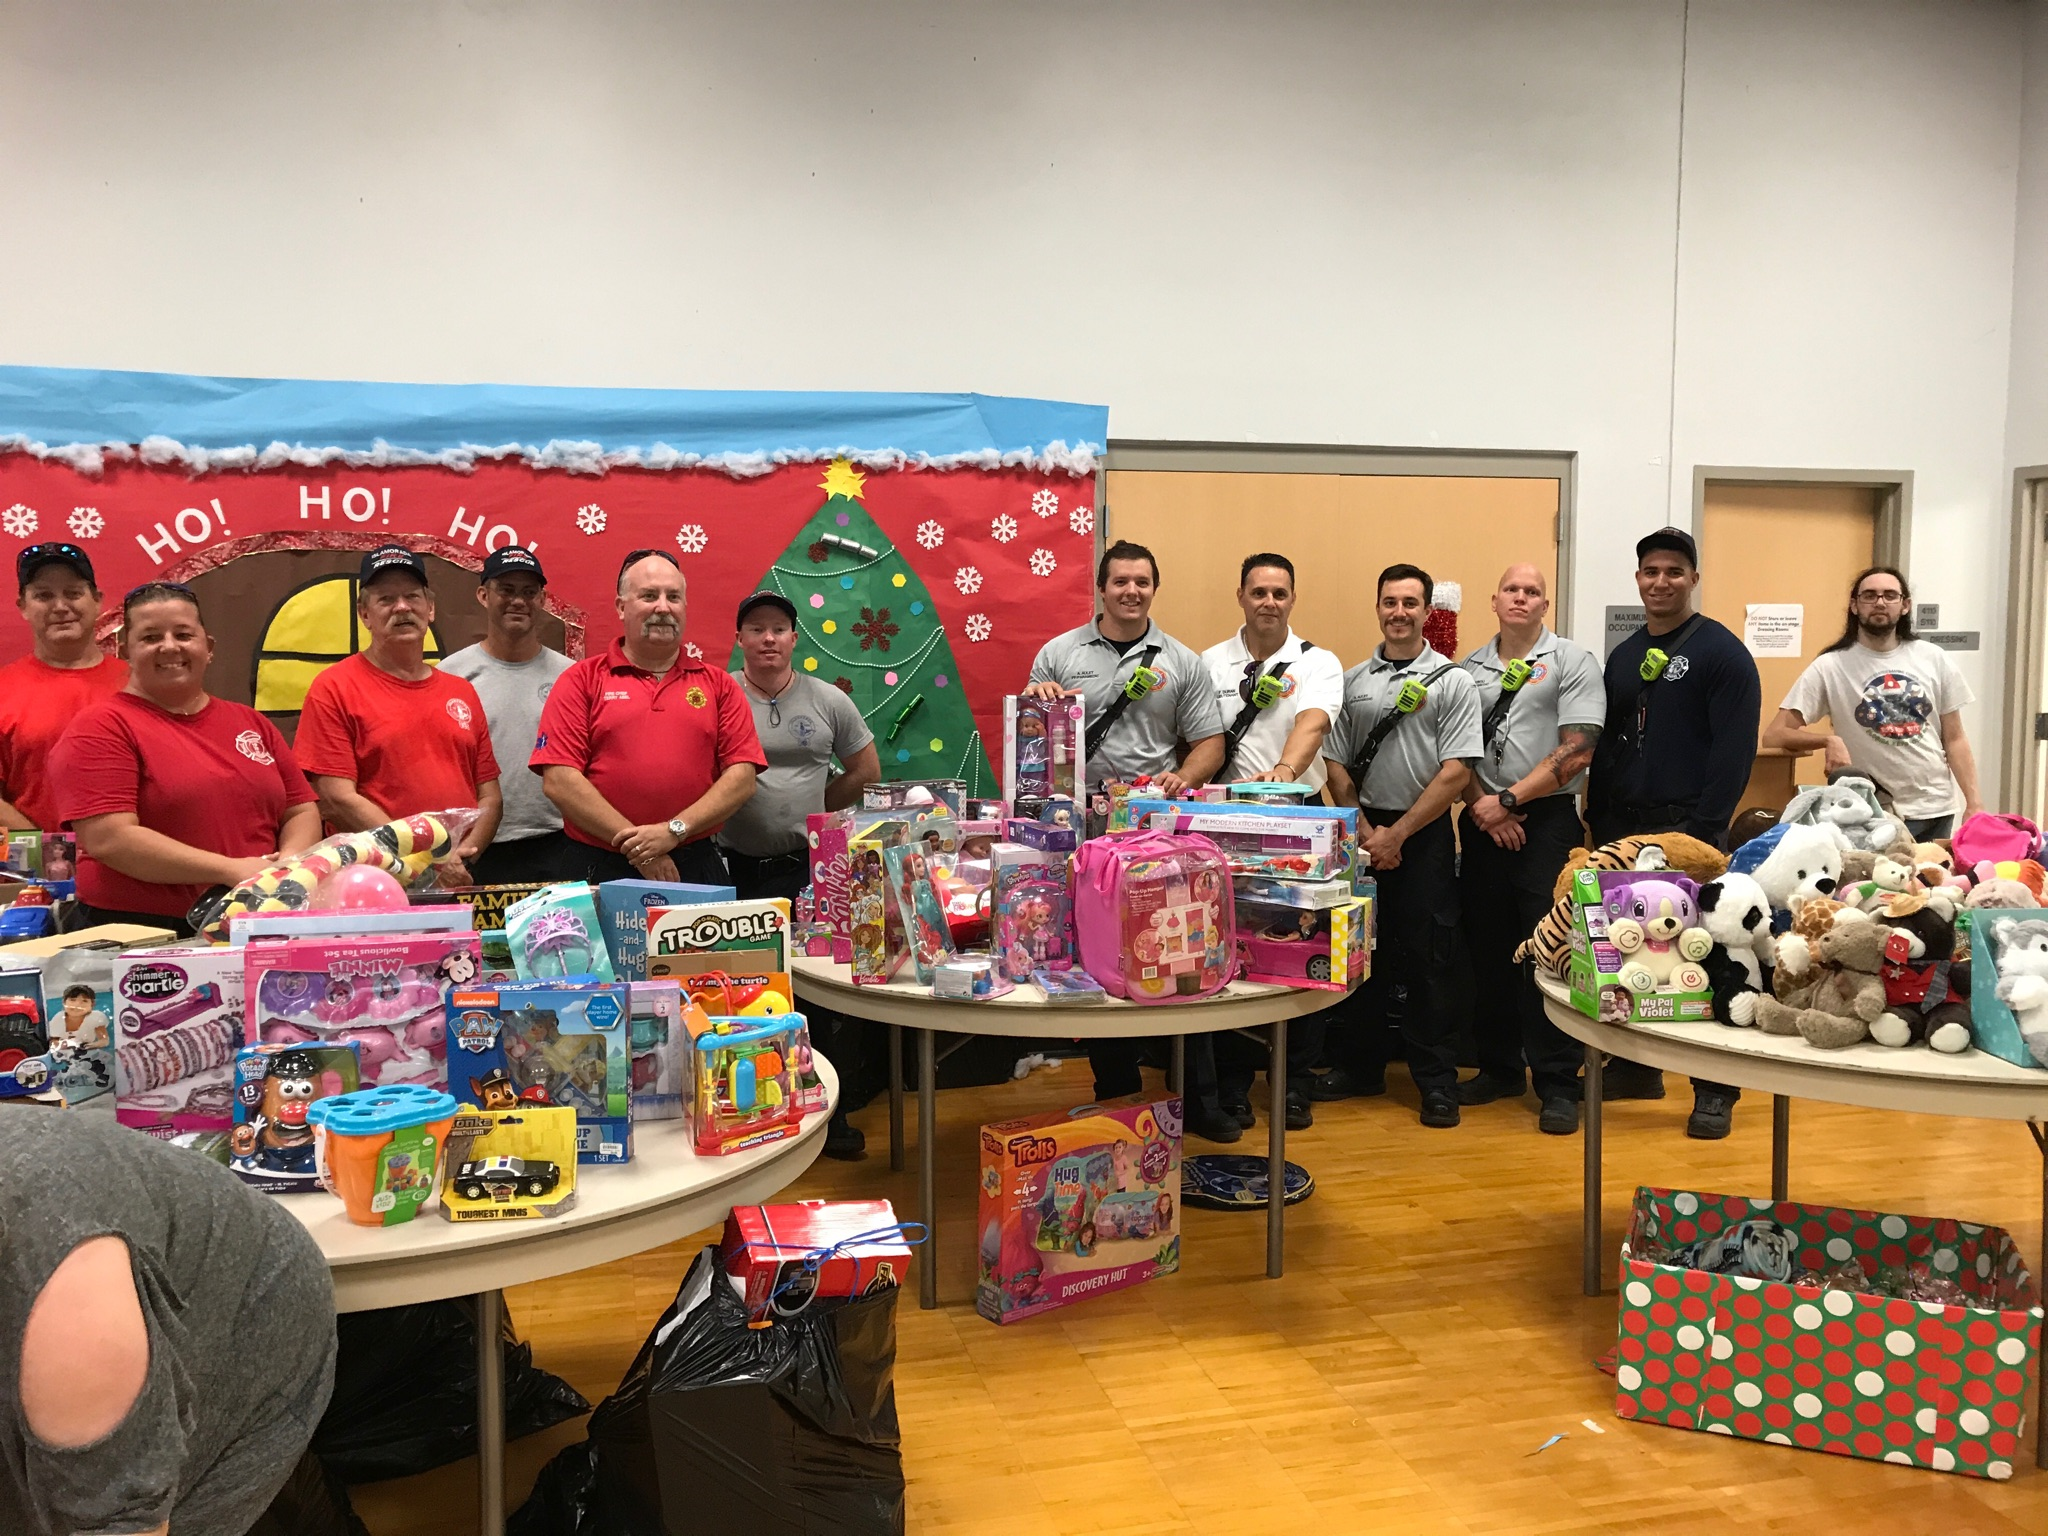 Toys_for_Tots_at_Sugarloaf_school